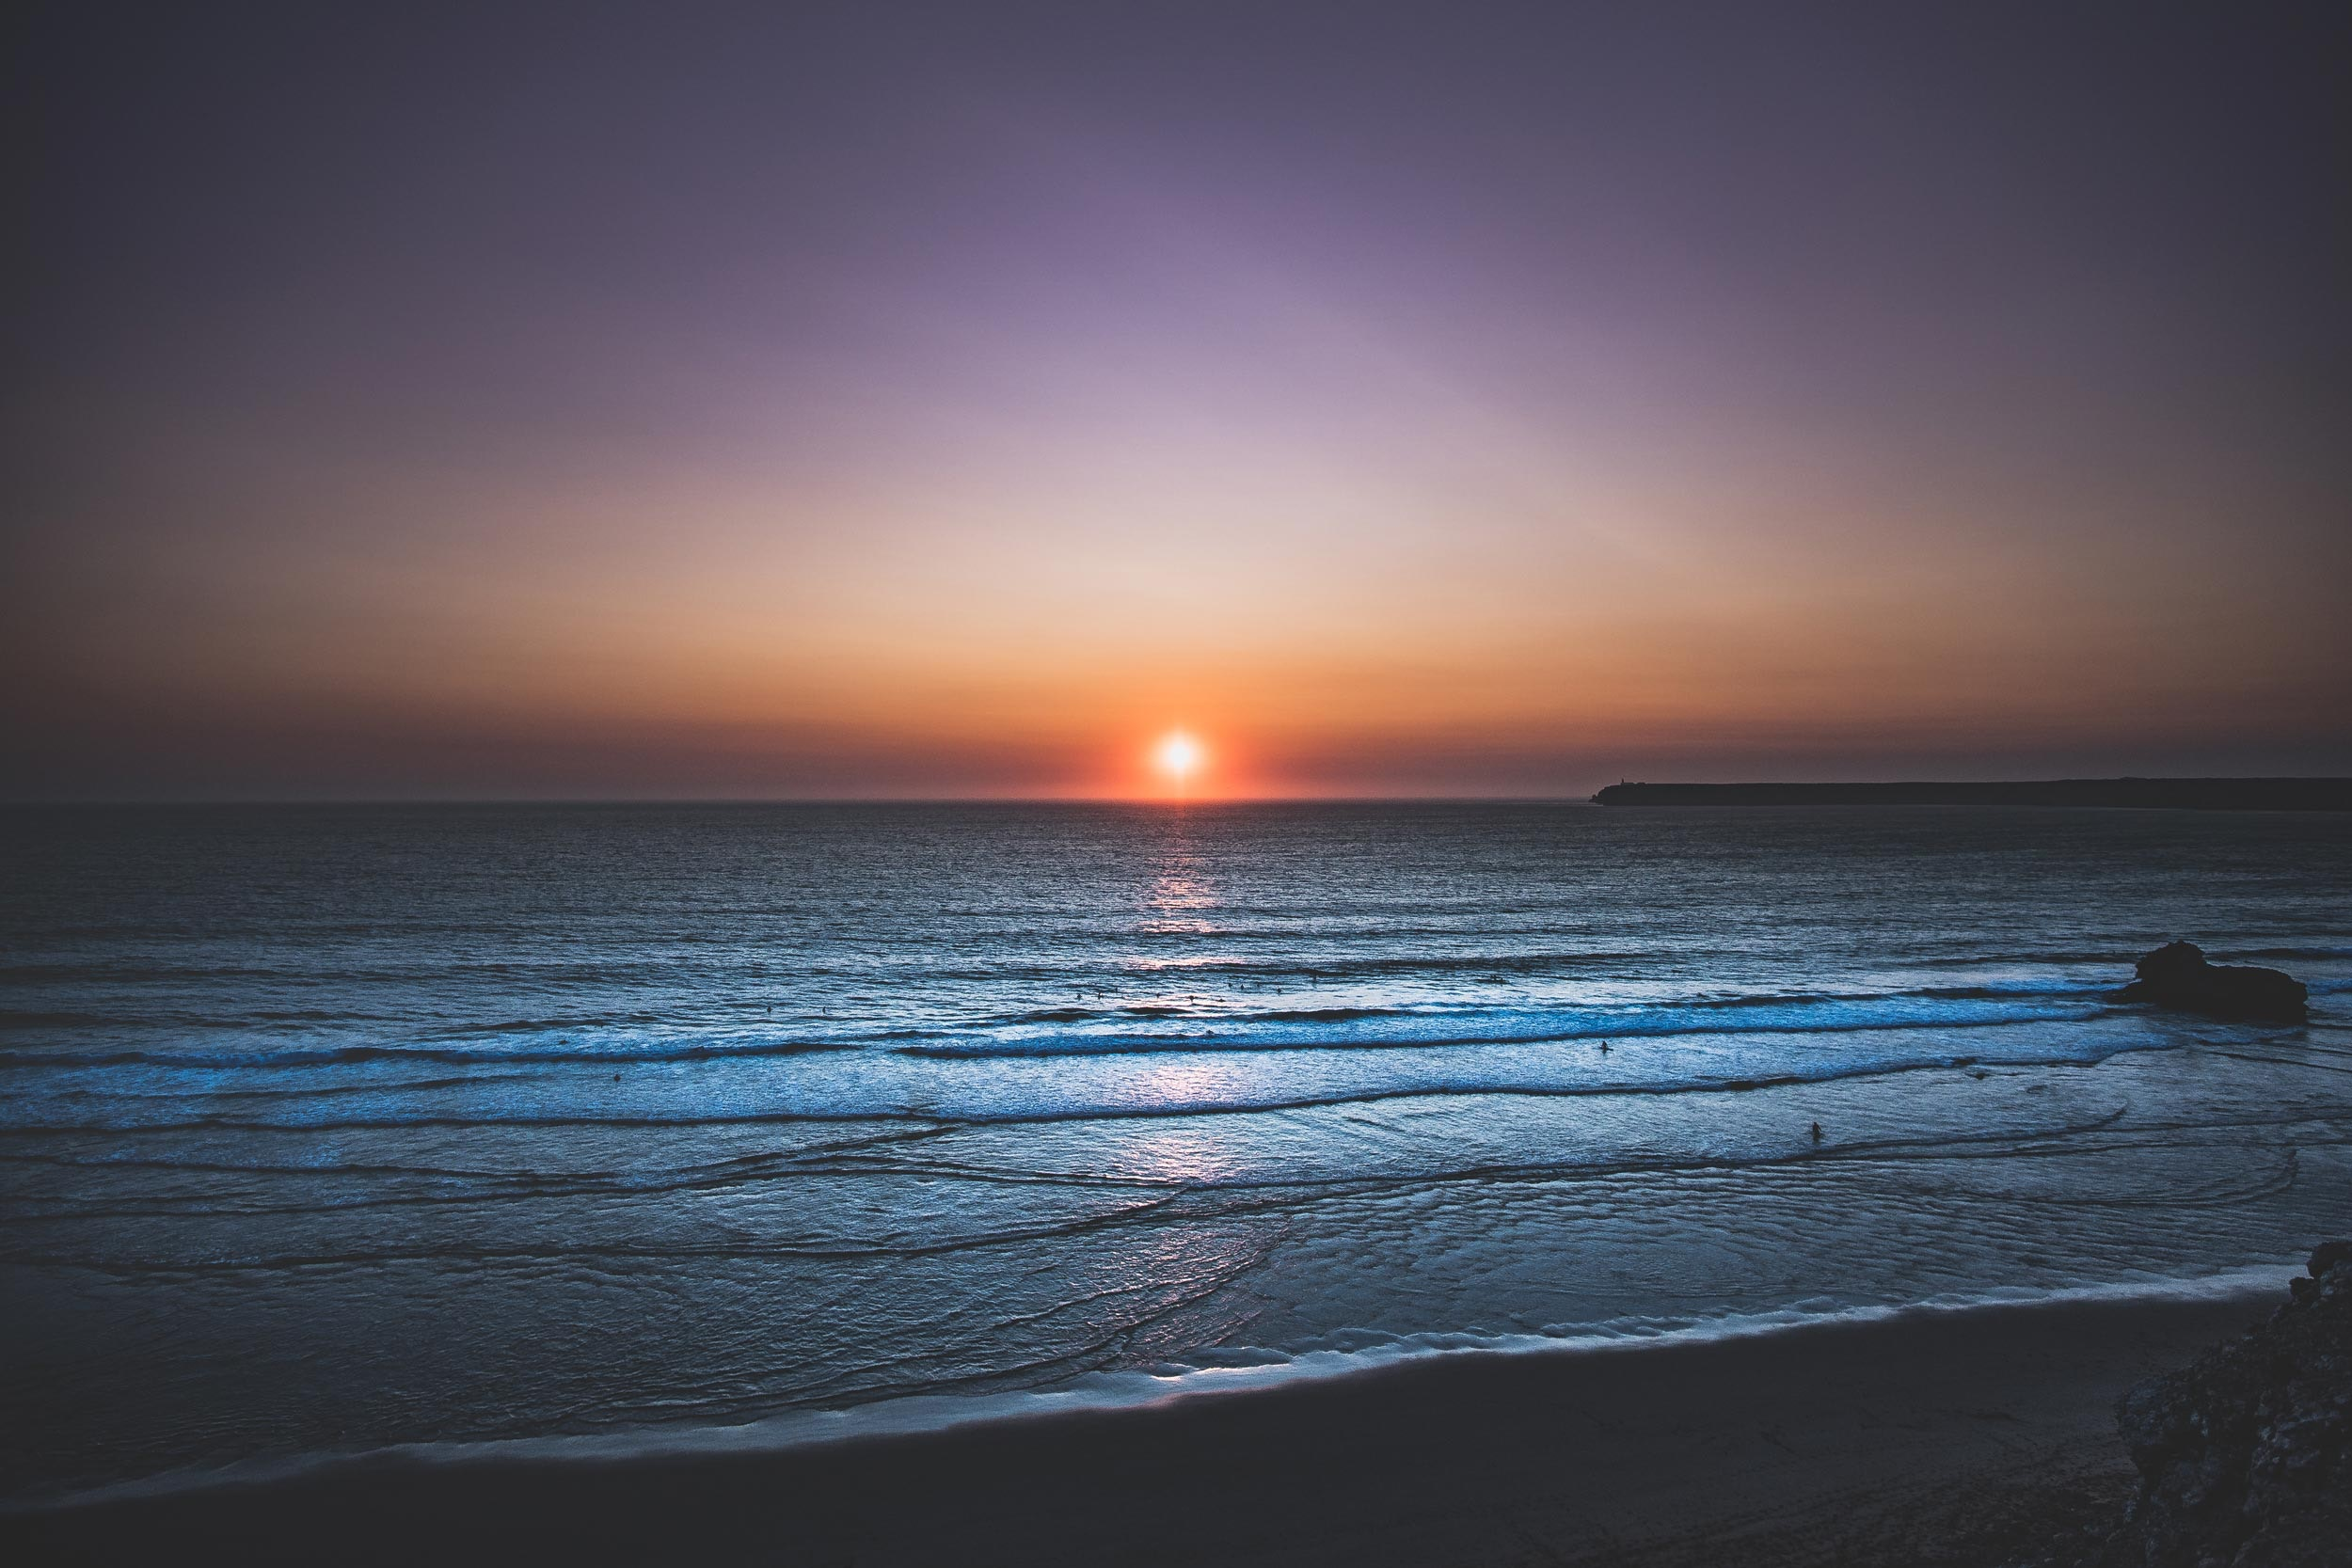 Sunset, the endless sea, 55754